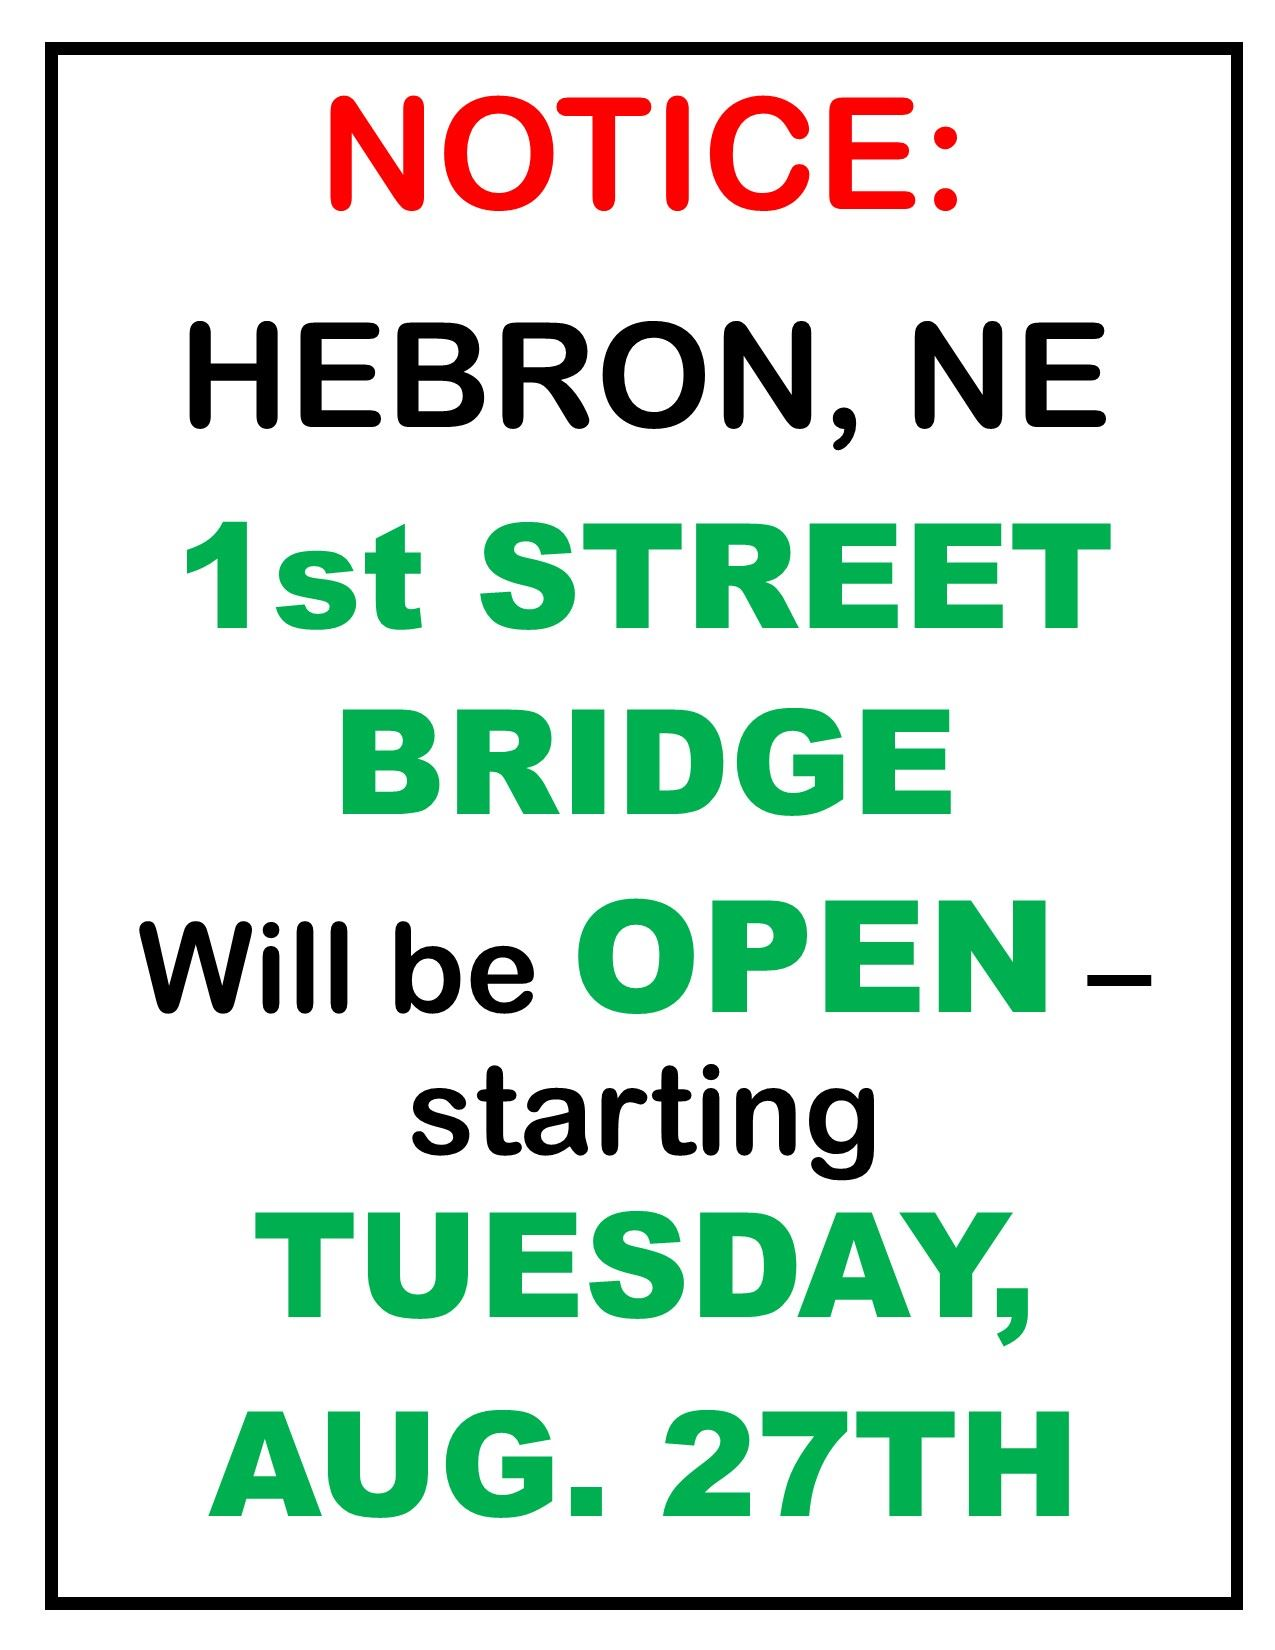 1st STREET BRIDGE NOTICE 1